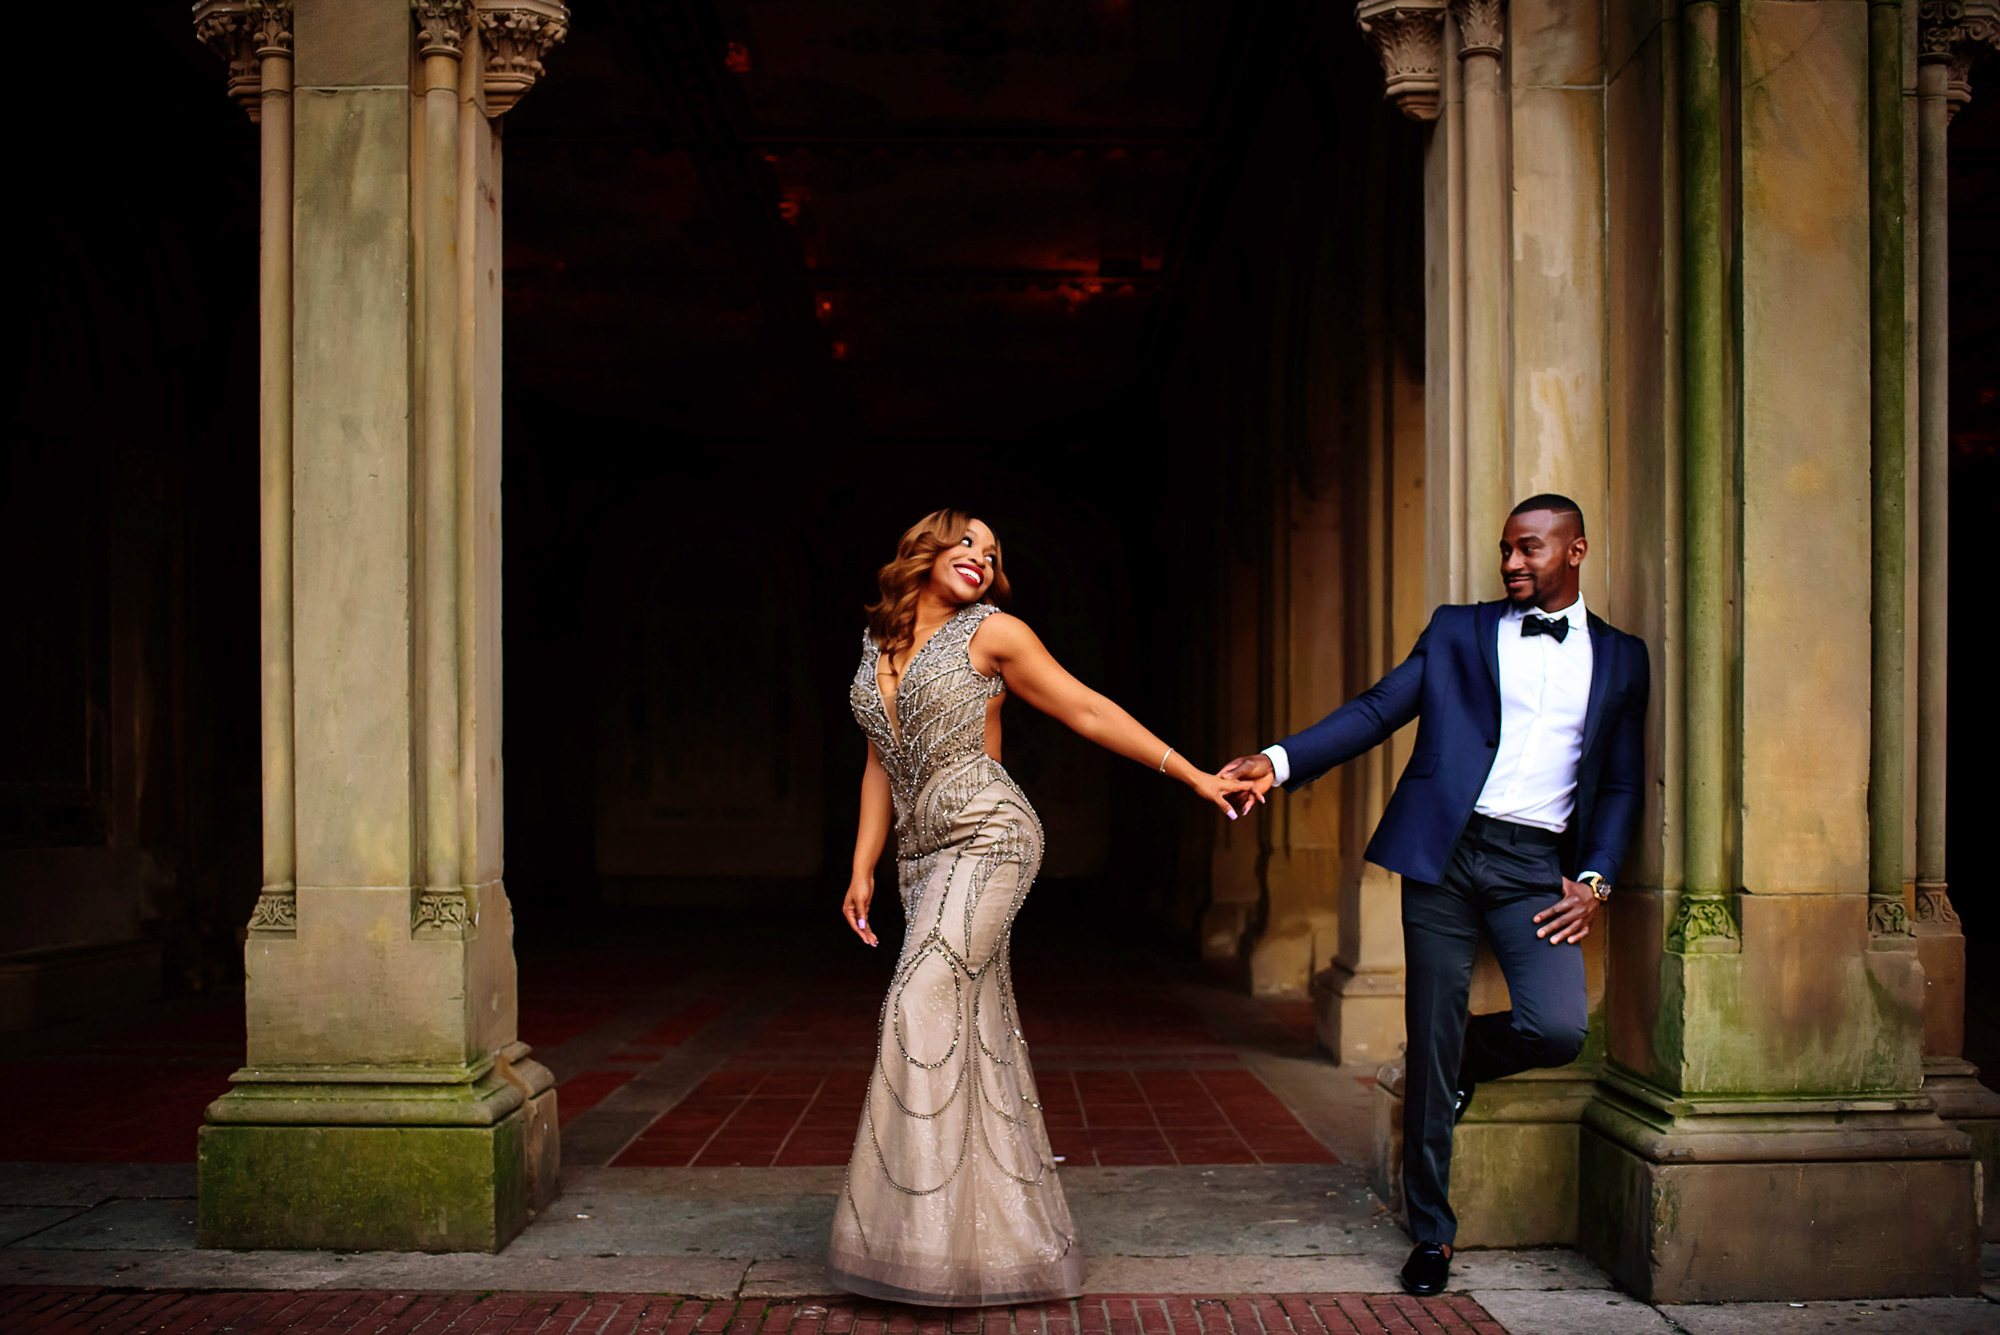 Fashionable bride and groom holding hands - photo by Jide Alakija